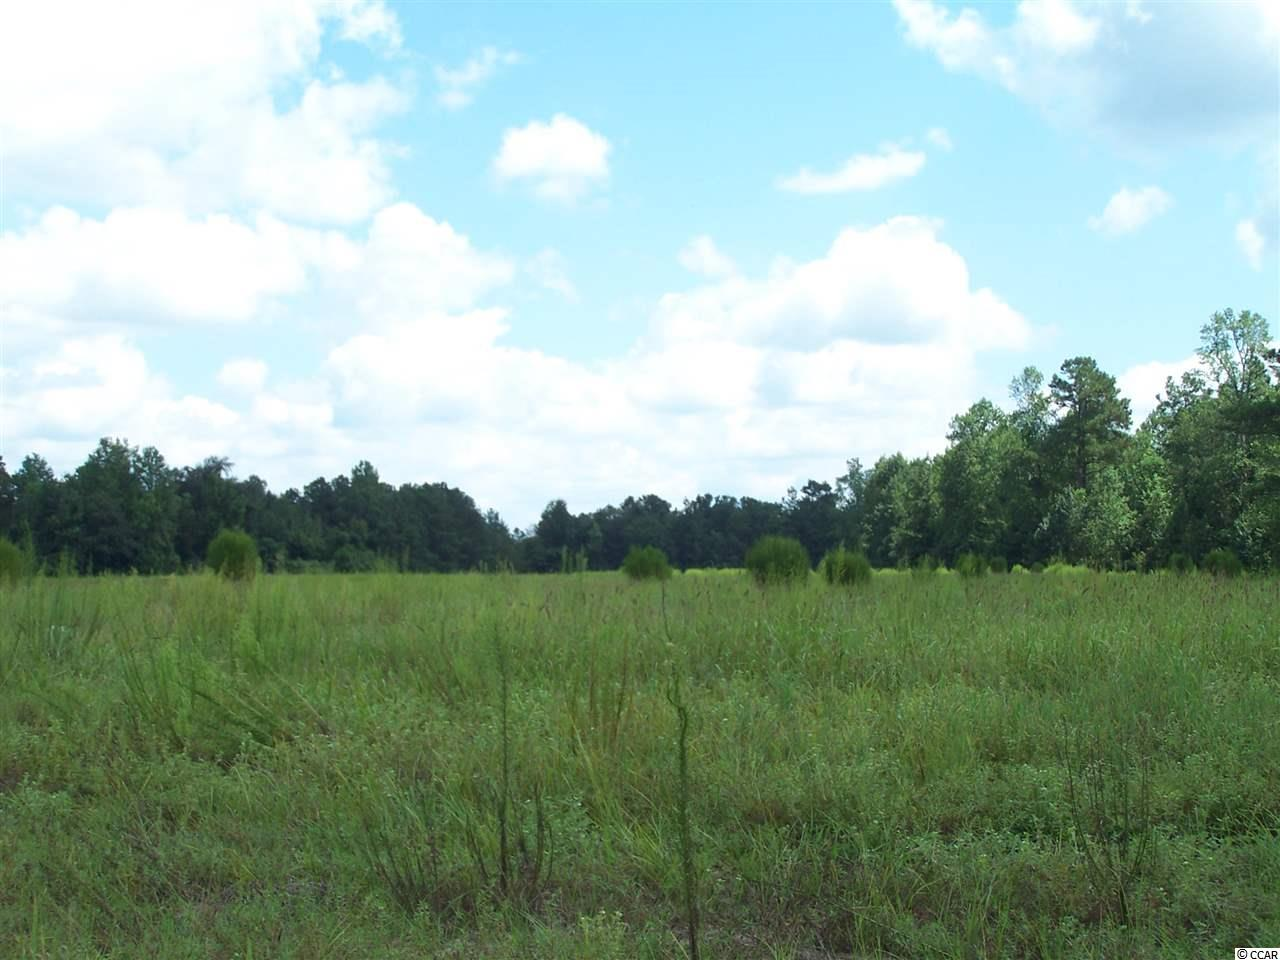 Acreage for Sale at TBD HIGHWAY 348 TBD HIGHWAY 348 Loris, South Carolina 29569 United States